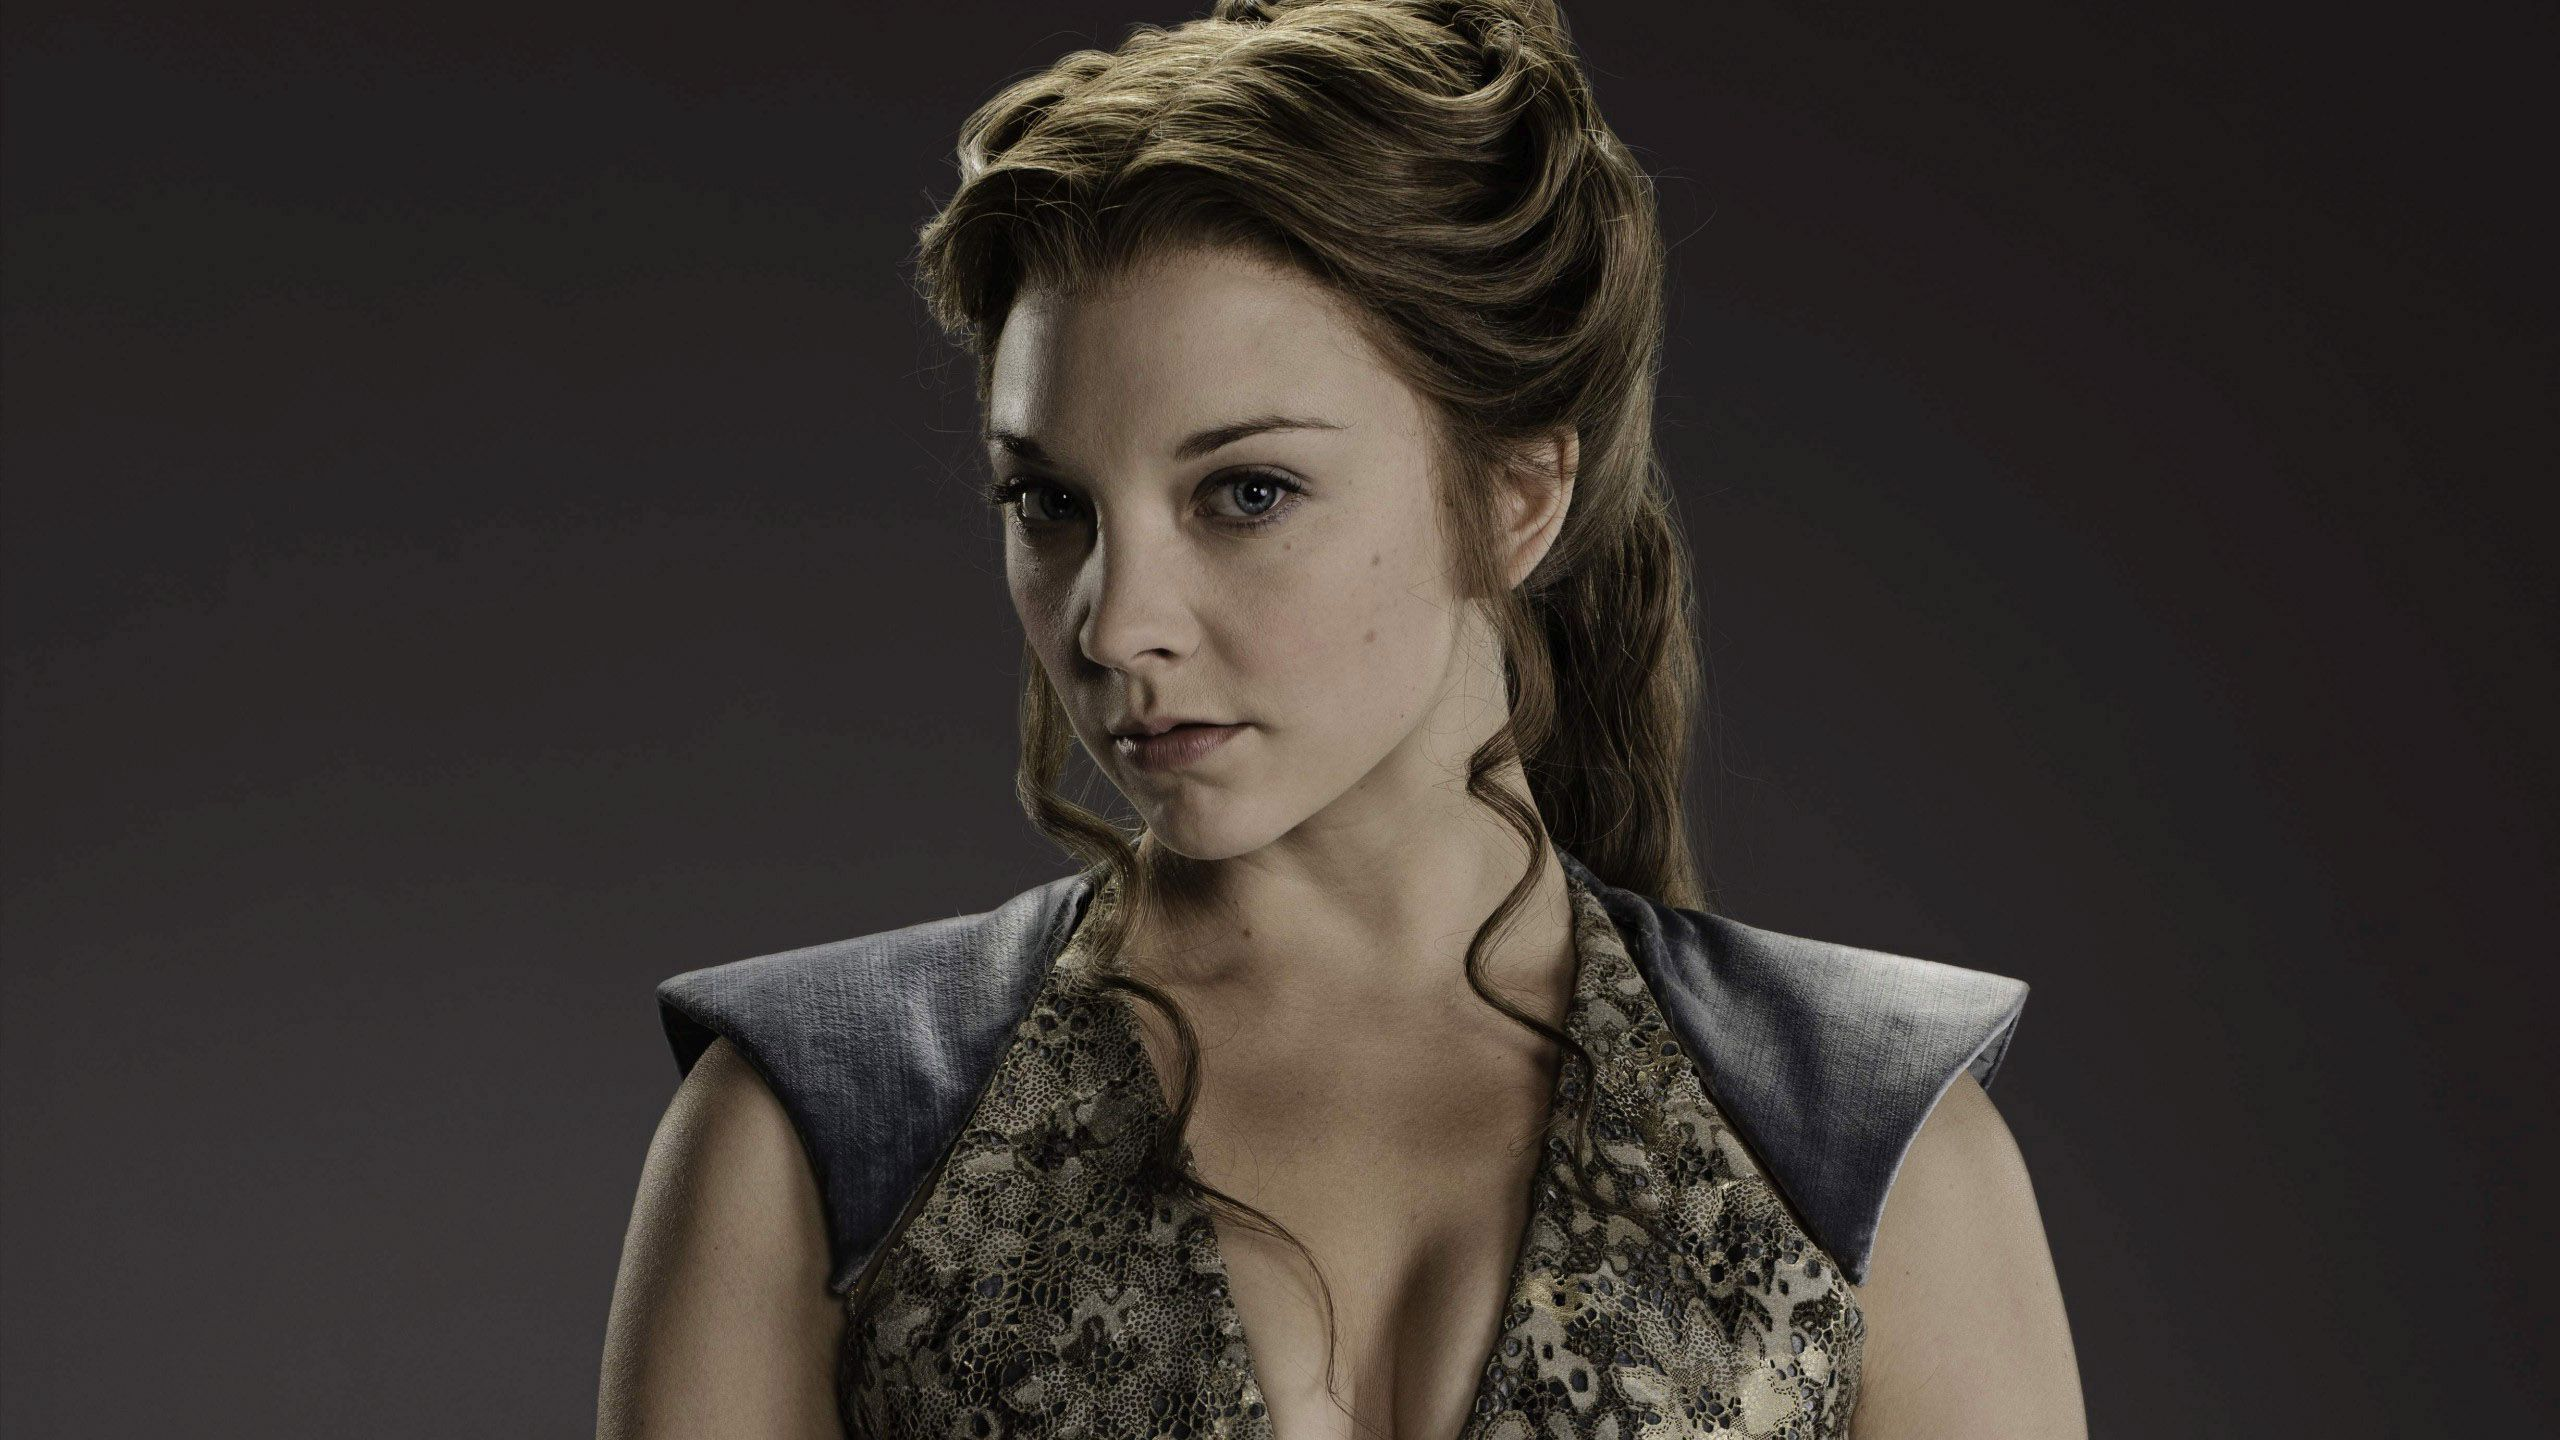 Natalie Dormer Wallpapers High Resolution and Quality Download